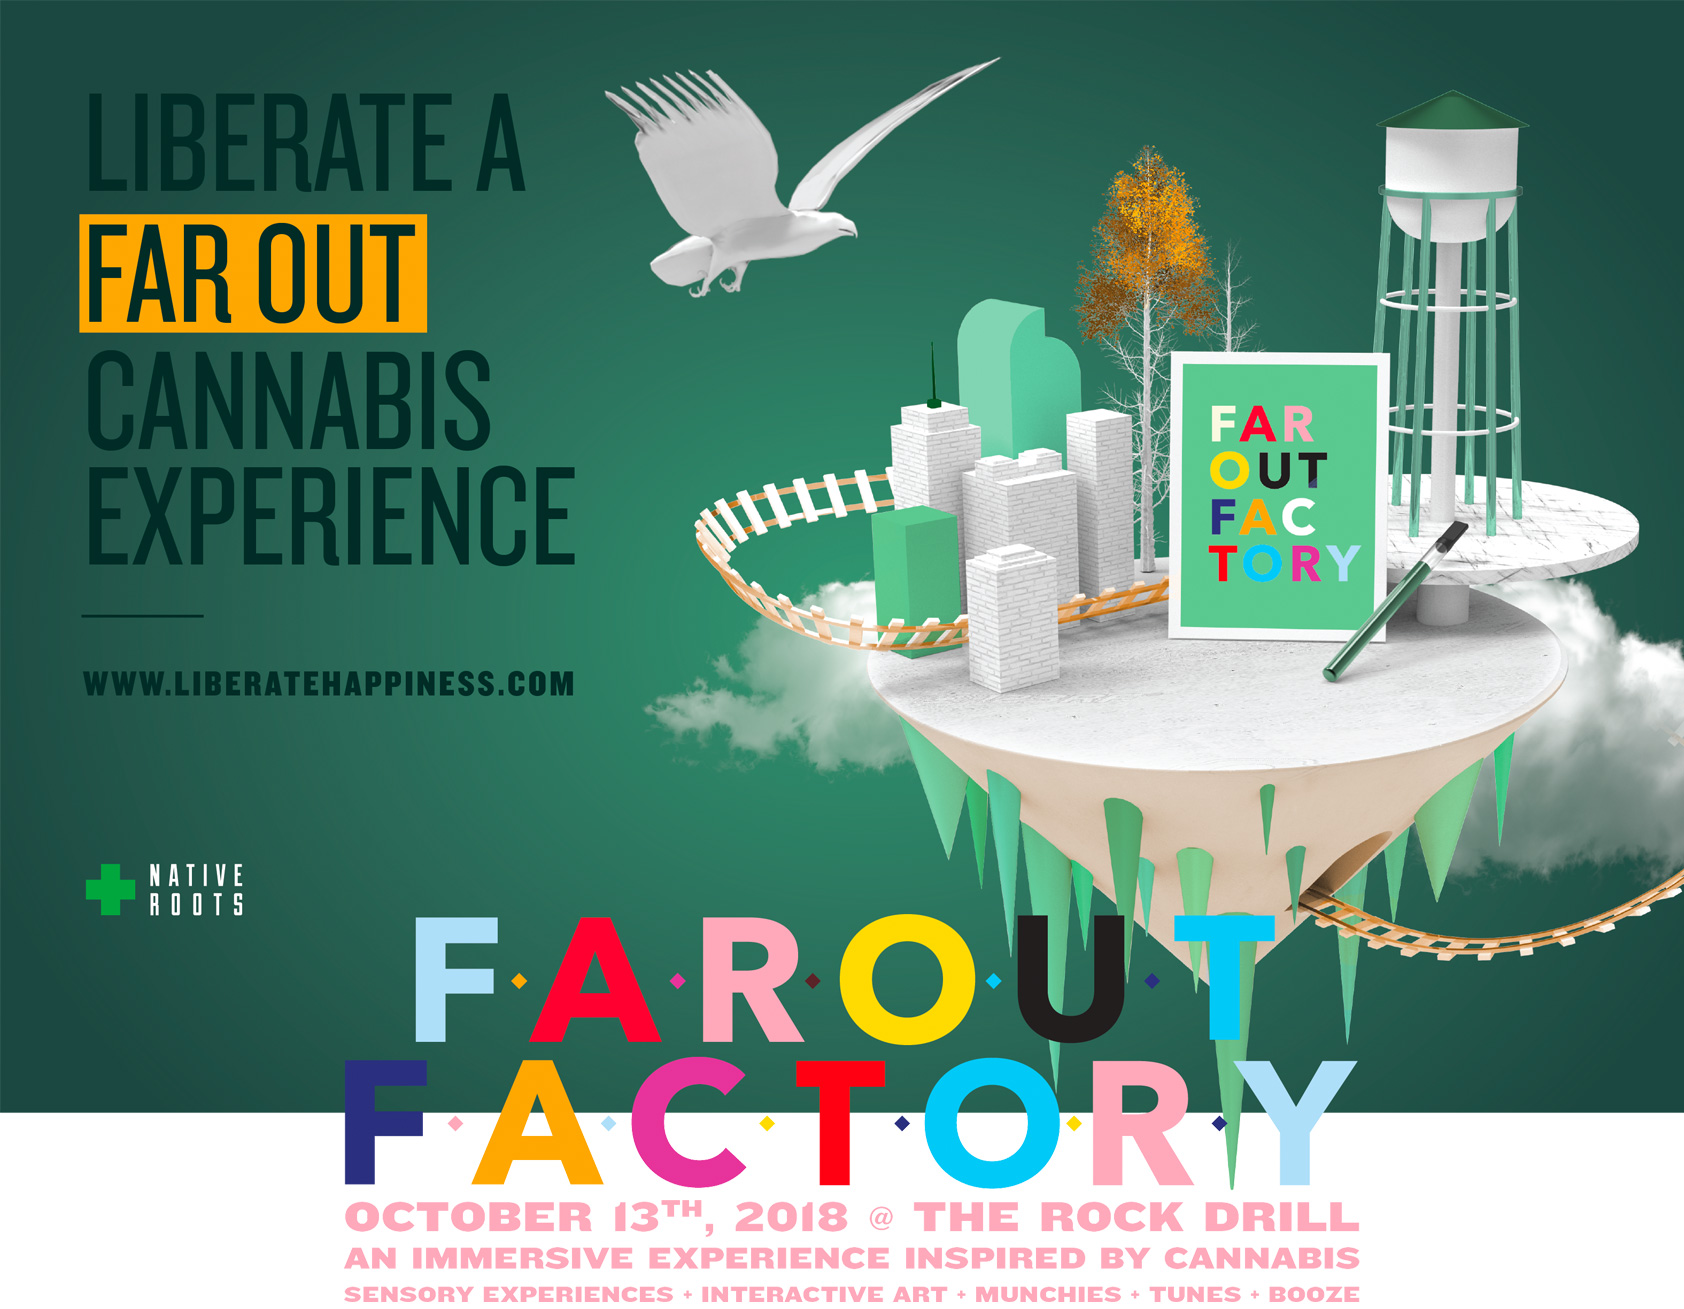 Win Tickets to Far Out Factory from Native Roots